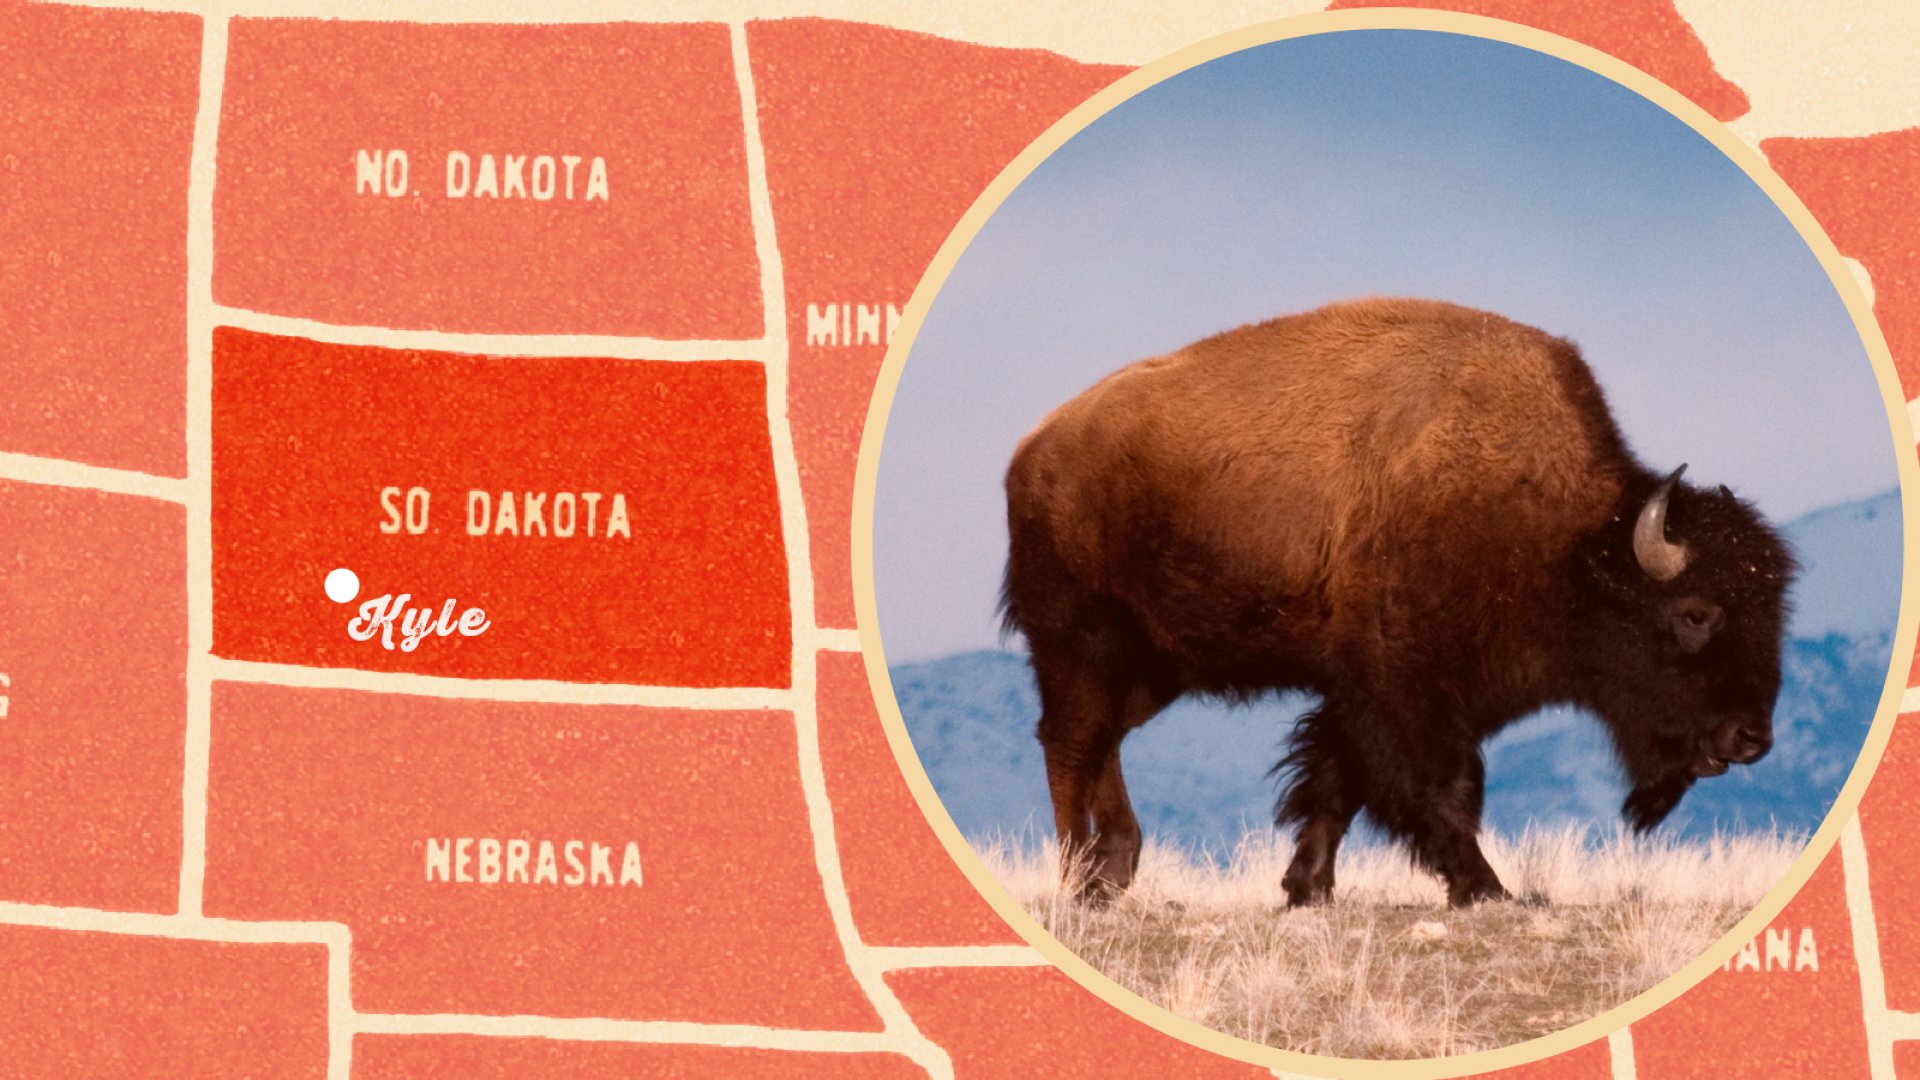 The $4 Million Centuries-Old Buffalo Recipe Transforming a Troubled Community